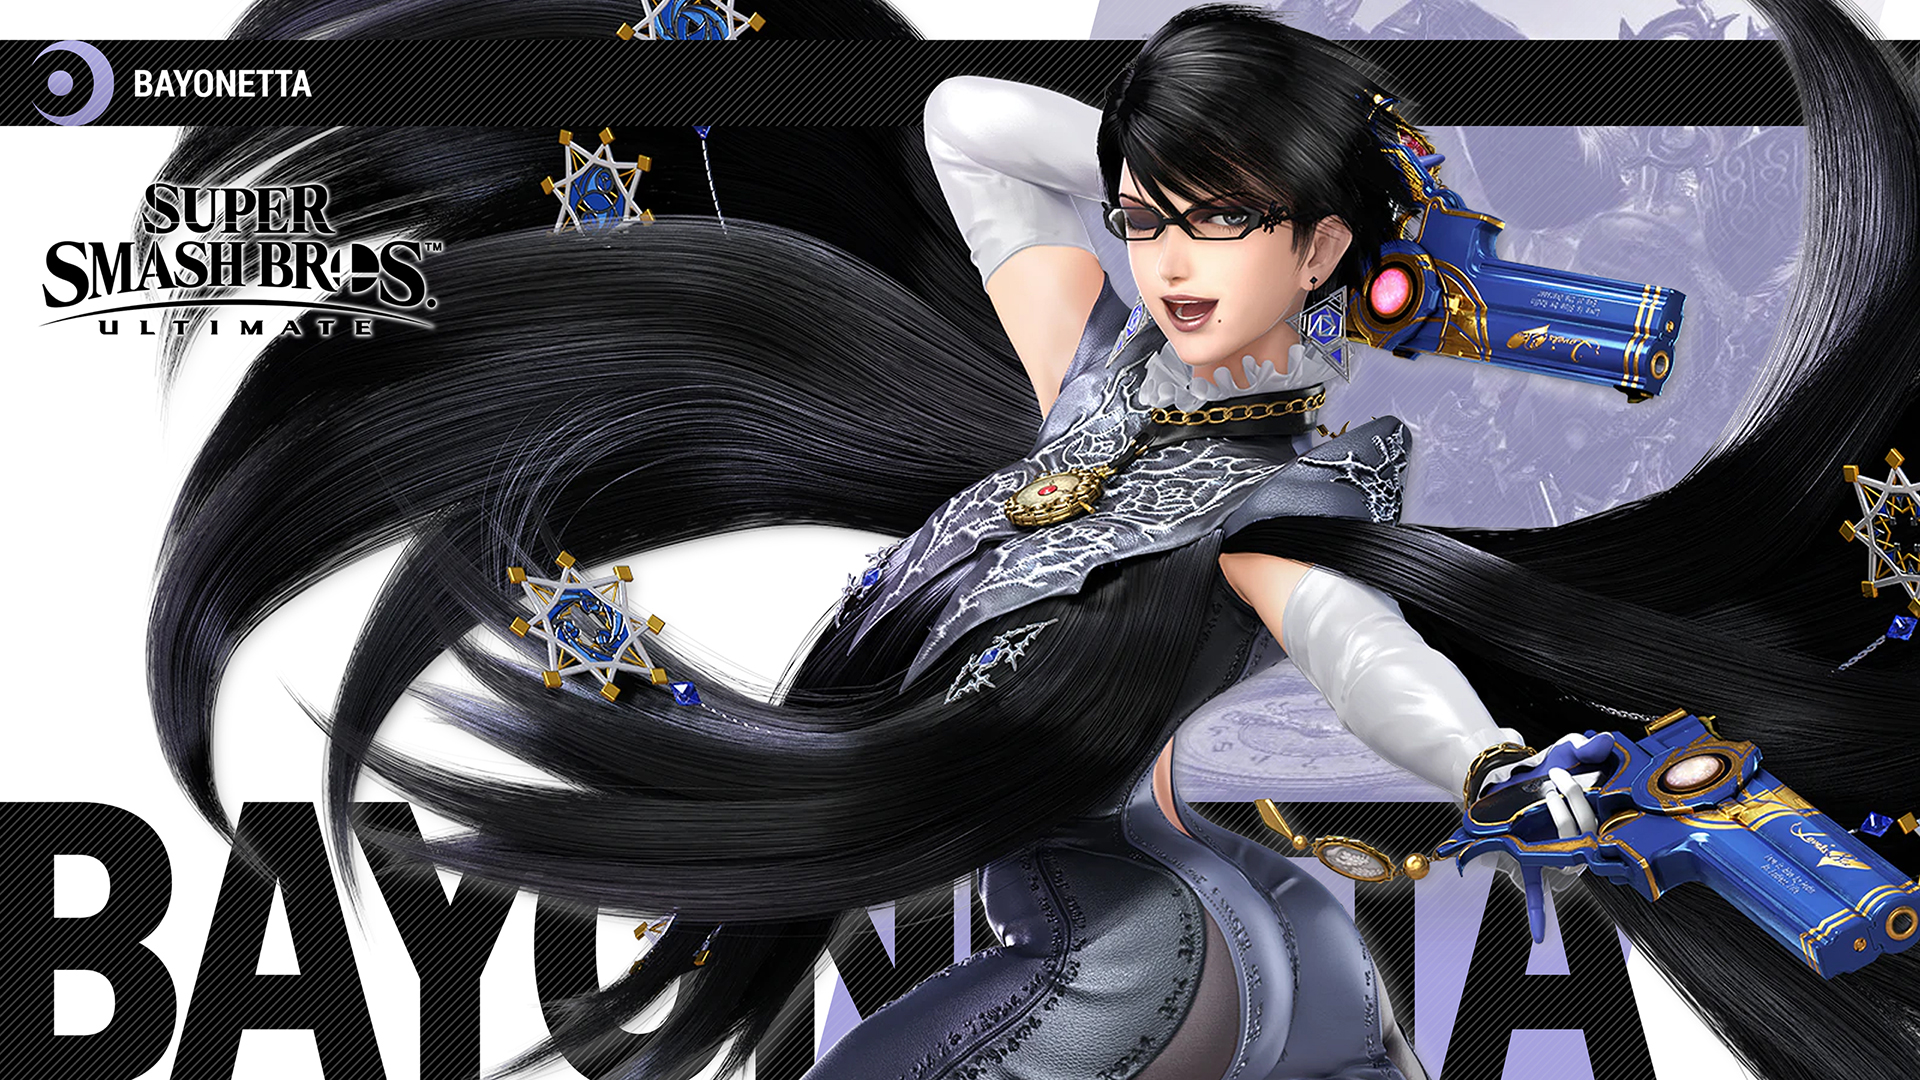 The Best Wallpaper For Iphone 7 Plus Super Smash Bros Ultimate Bayonetta Wallpapers Cat With